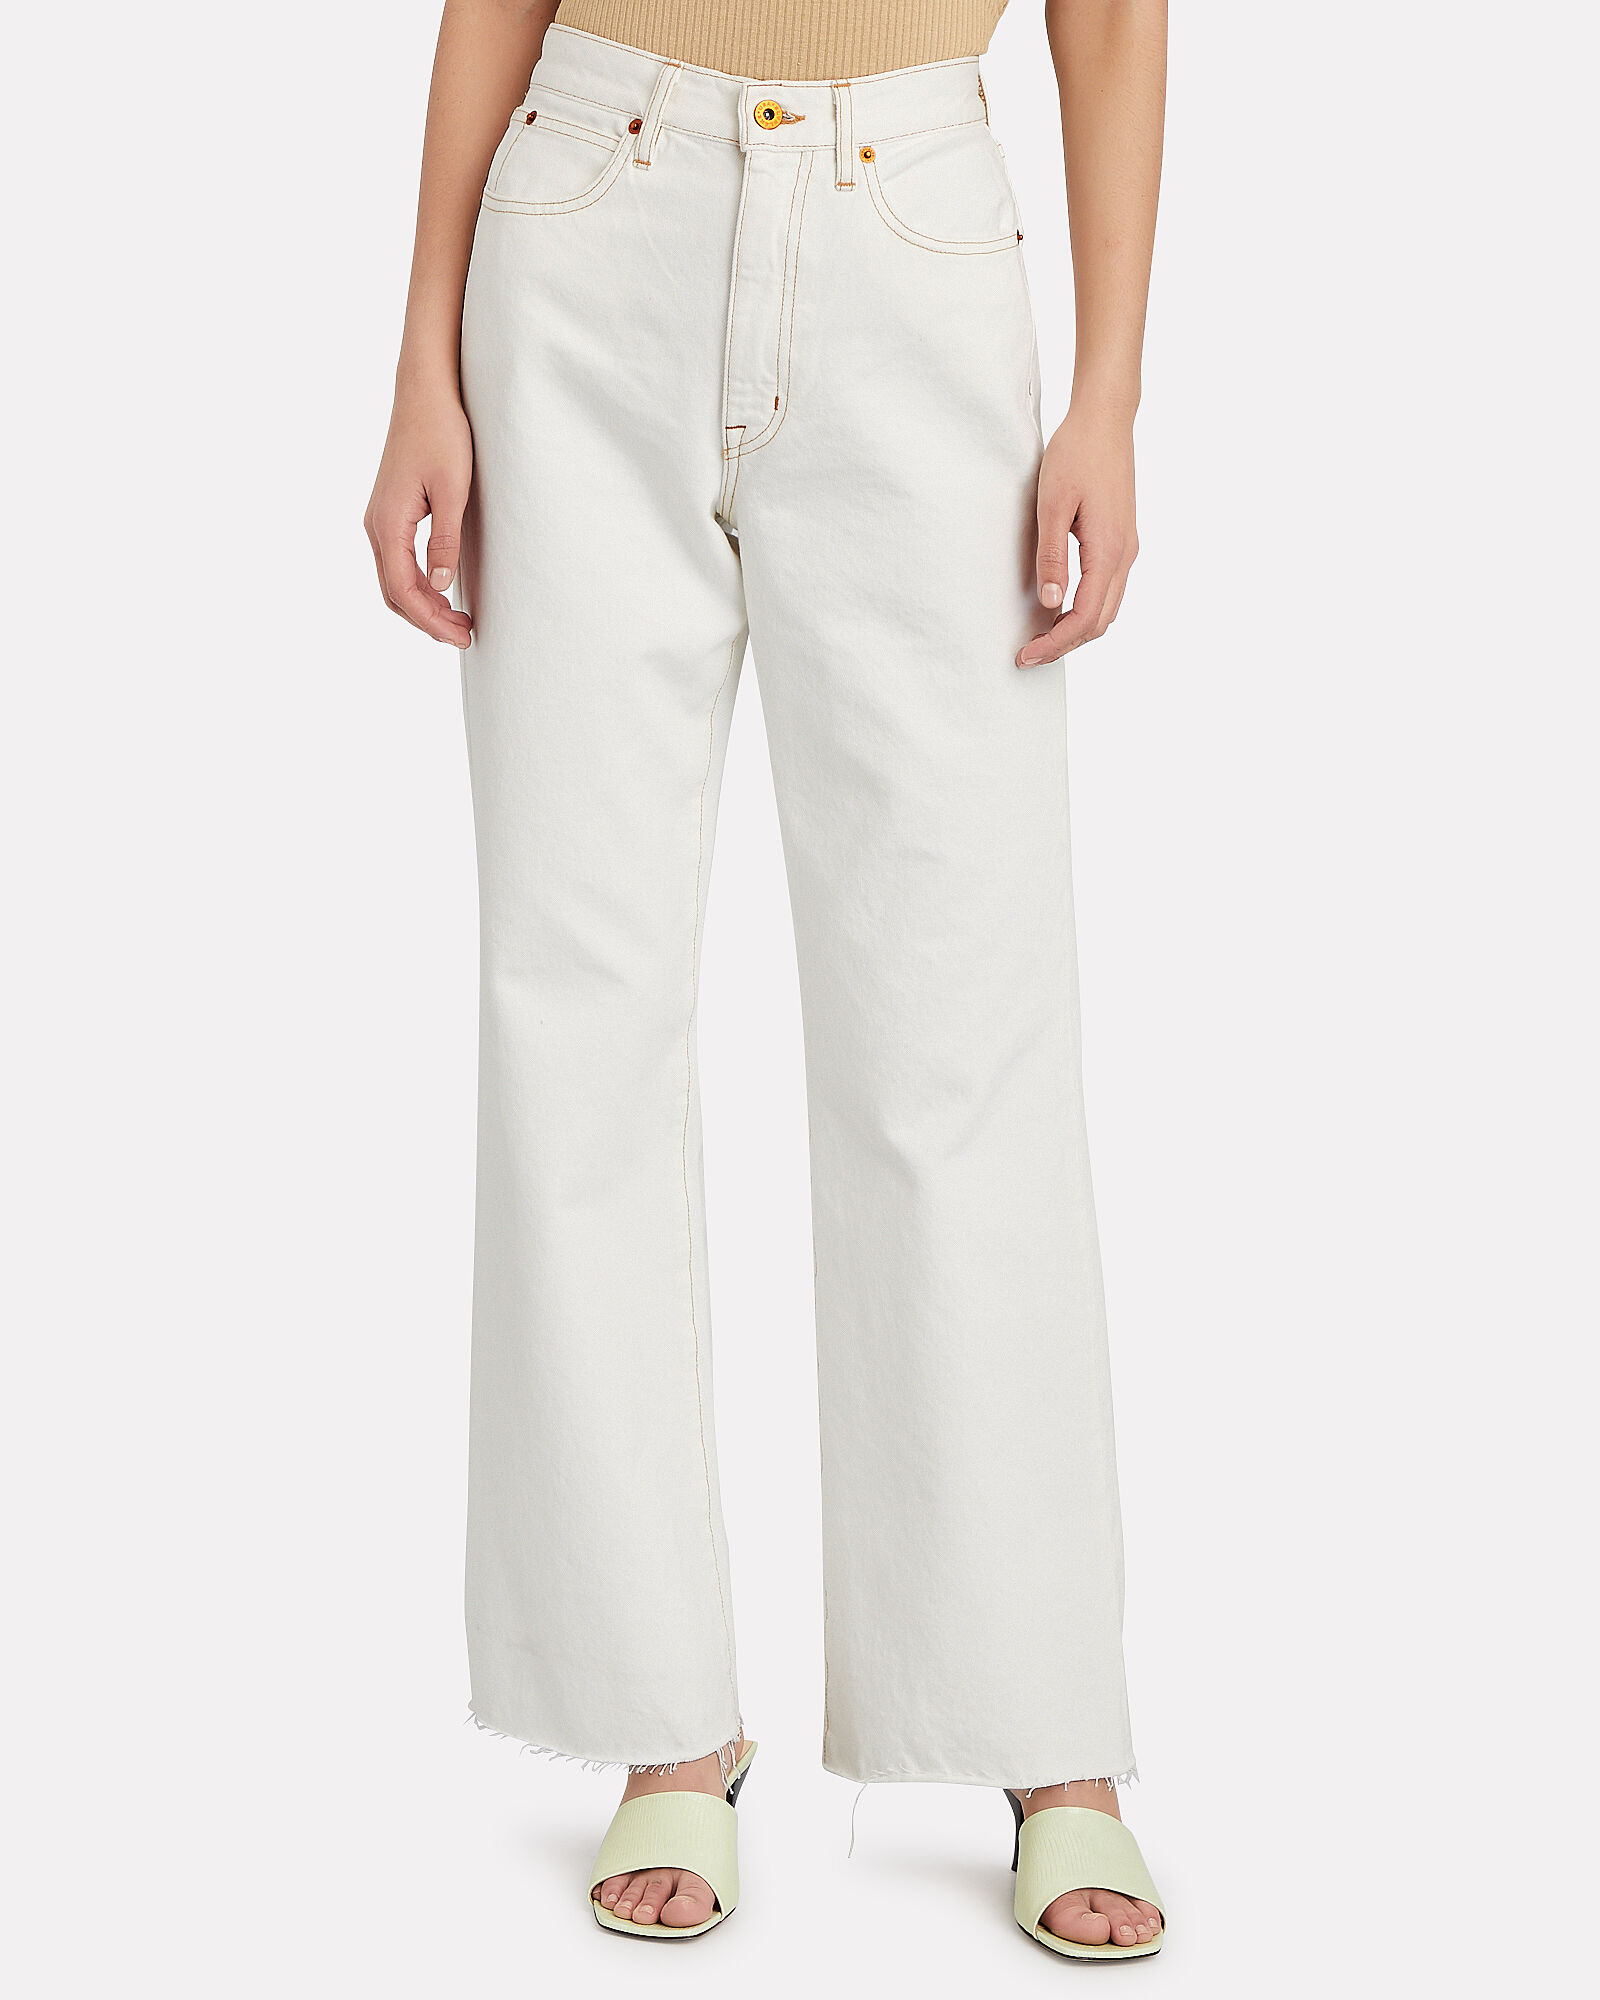 Grace High-Rise Ankle Jeans, WHITE, hi-res